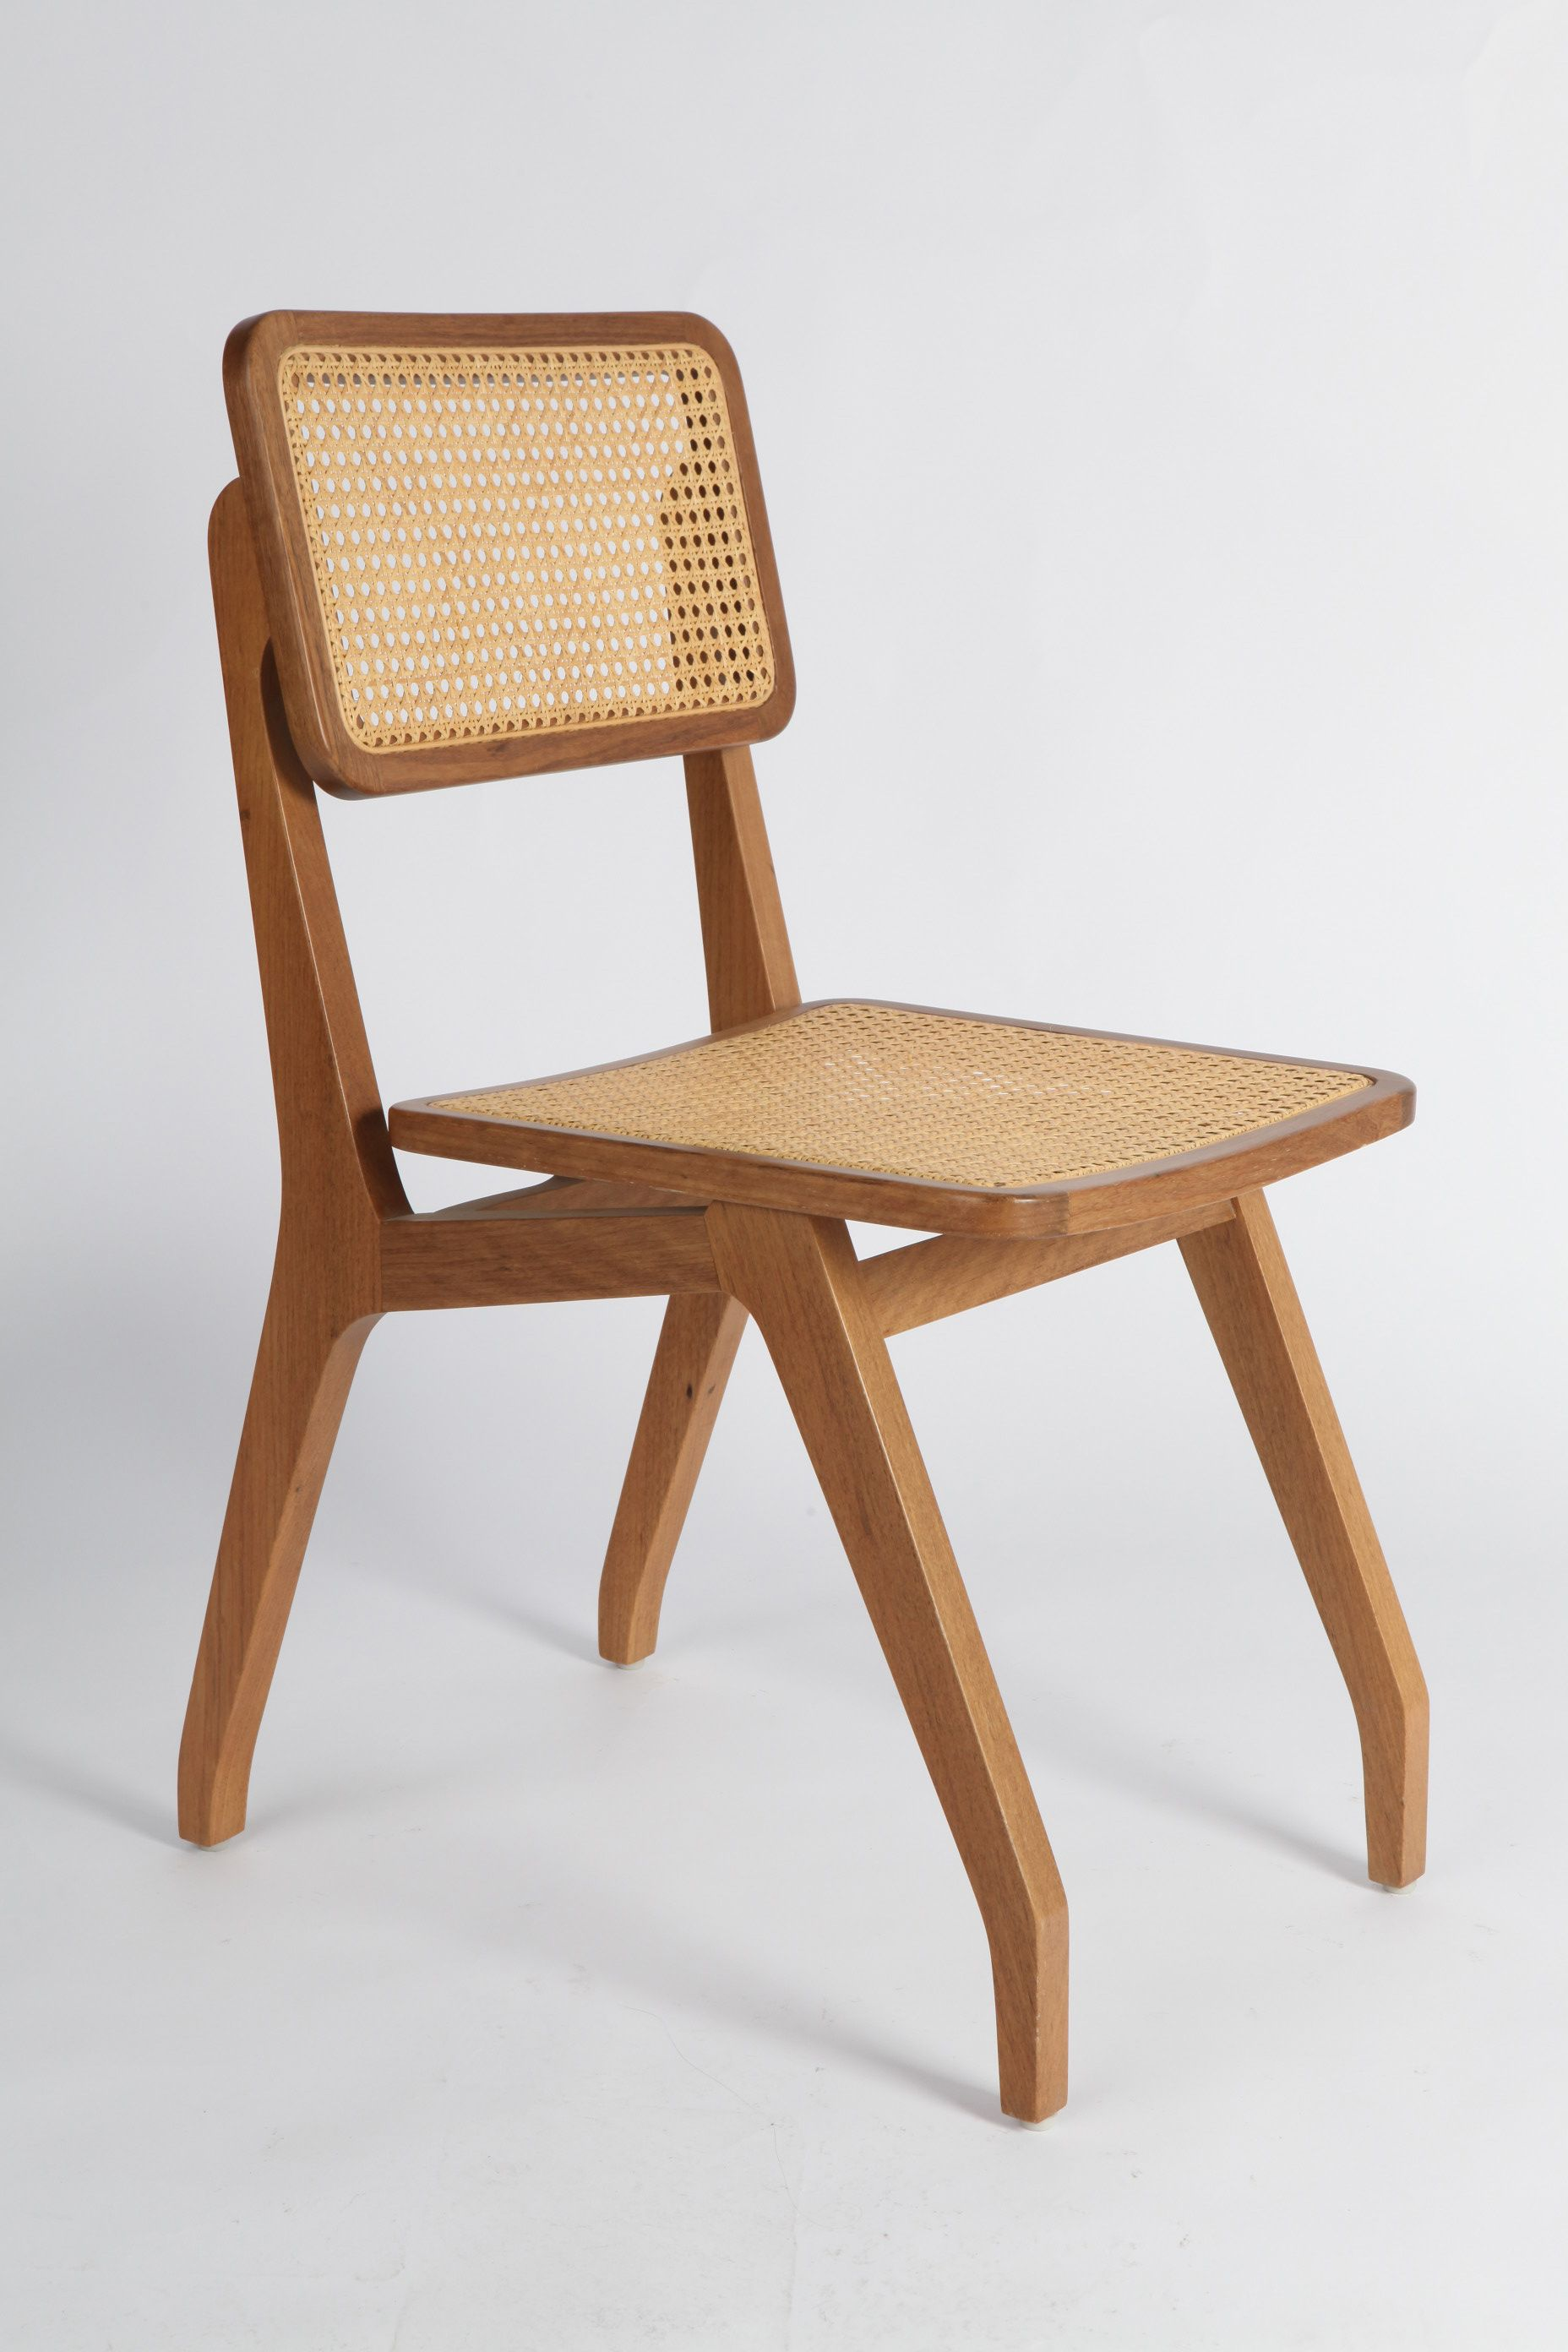 Contemporary reinterpretation of the ancient portuguese chair with straw, much found in Brazil. Designed for dining table, the chair, though lightweight, is extremely resistant.42x82x56cmCatuaba or reforestation Cinamomowoods